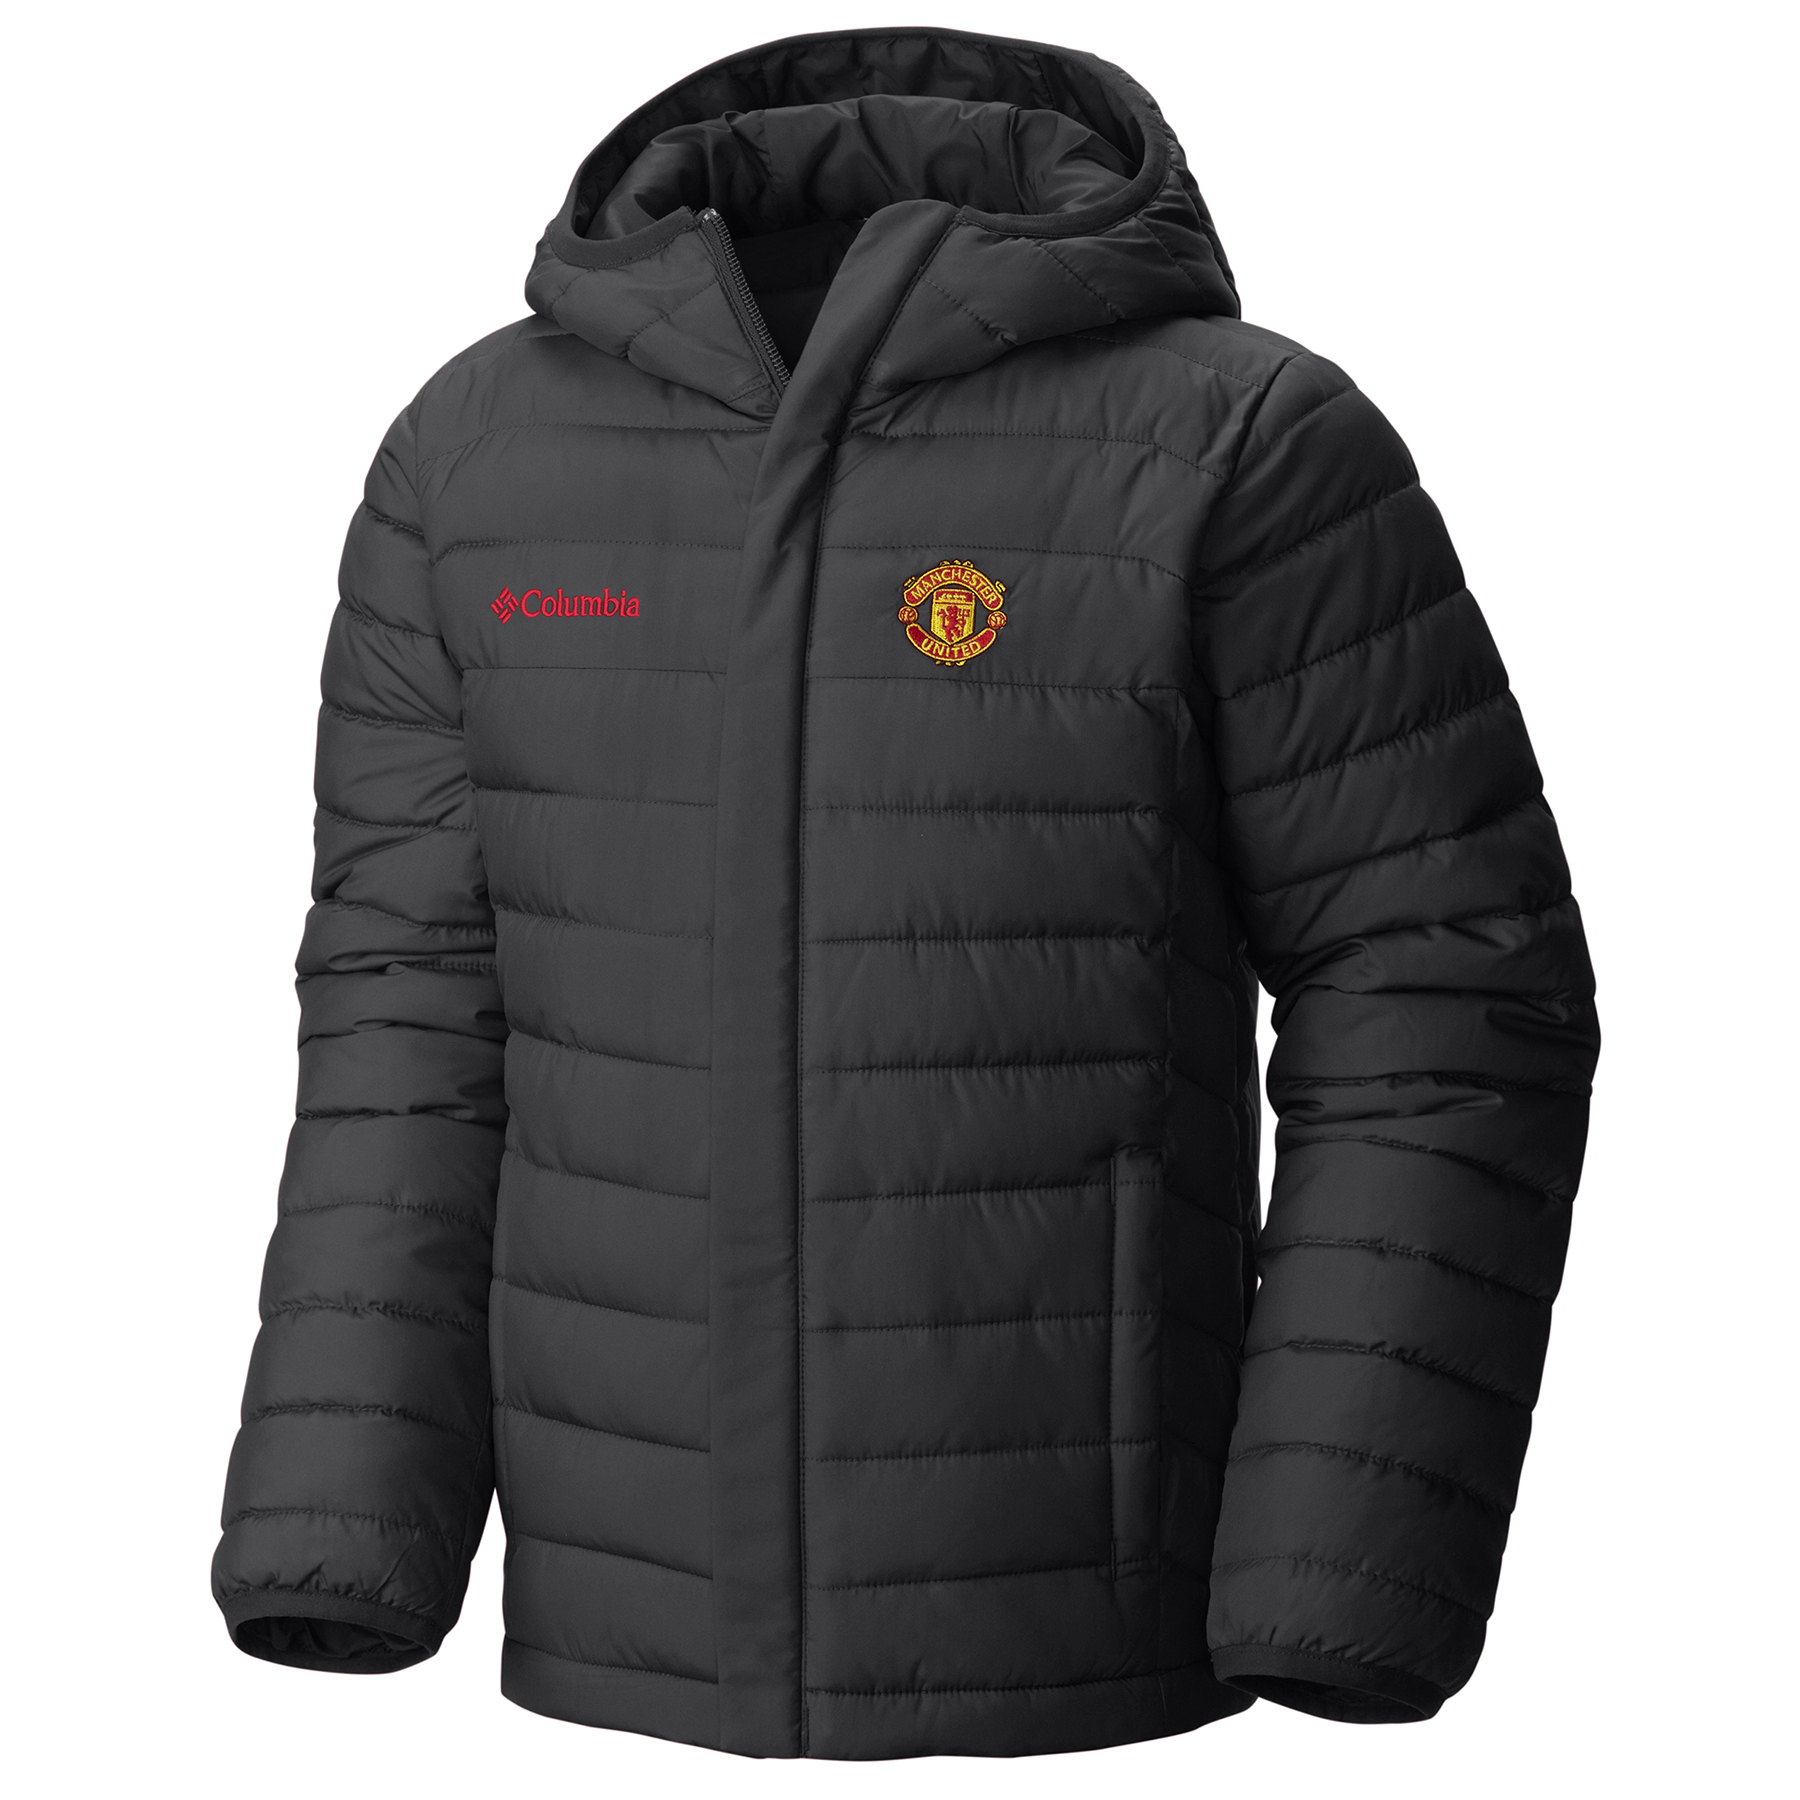 Manchester United Columbia Powder Lite Puffer Jacket - Black - Kids